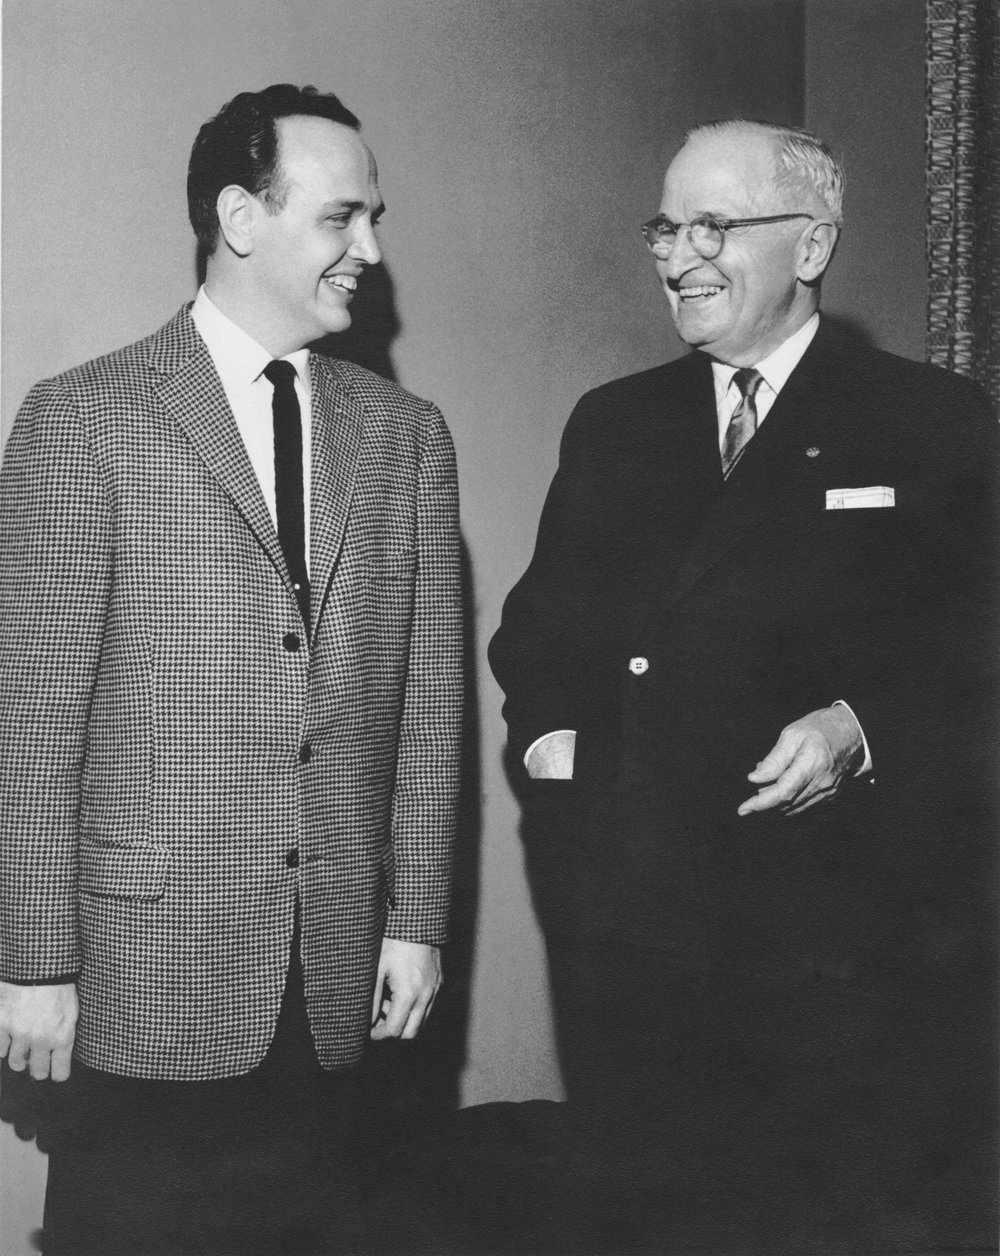 President Harry Truman with Roger